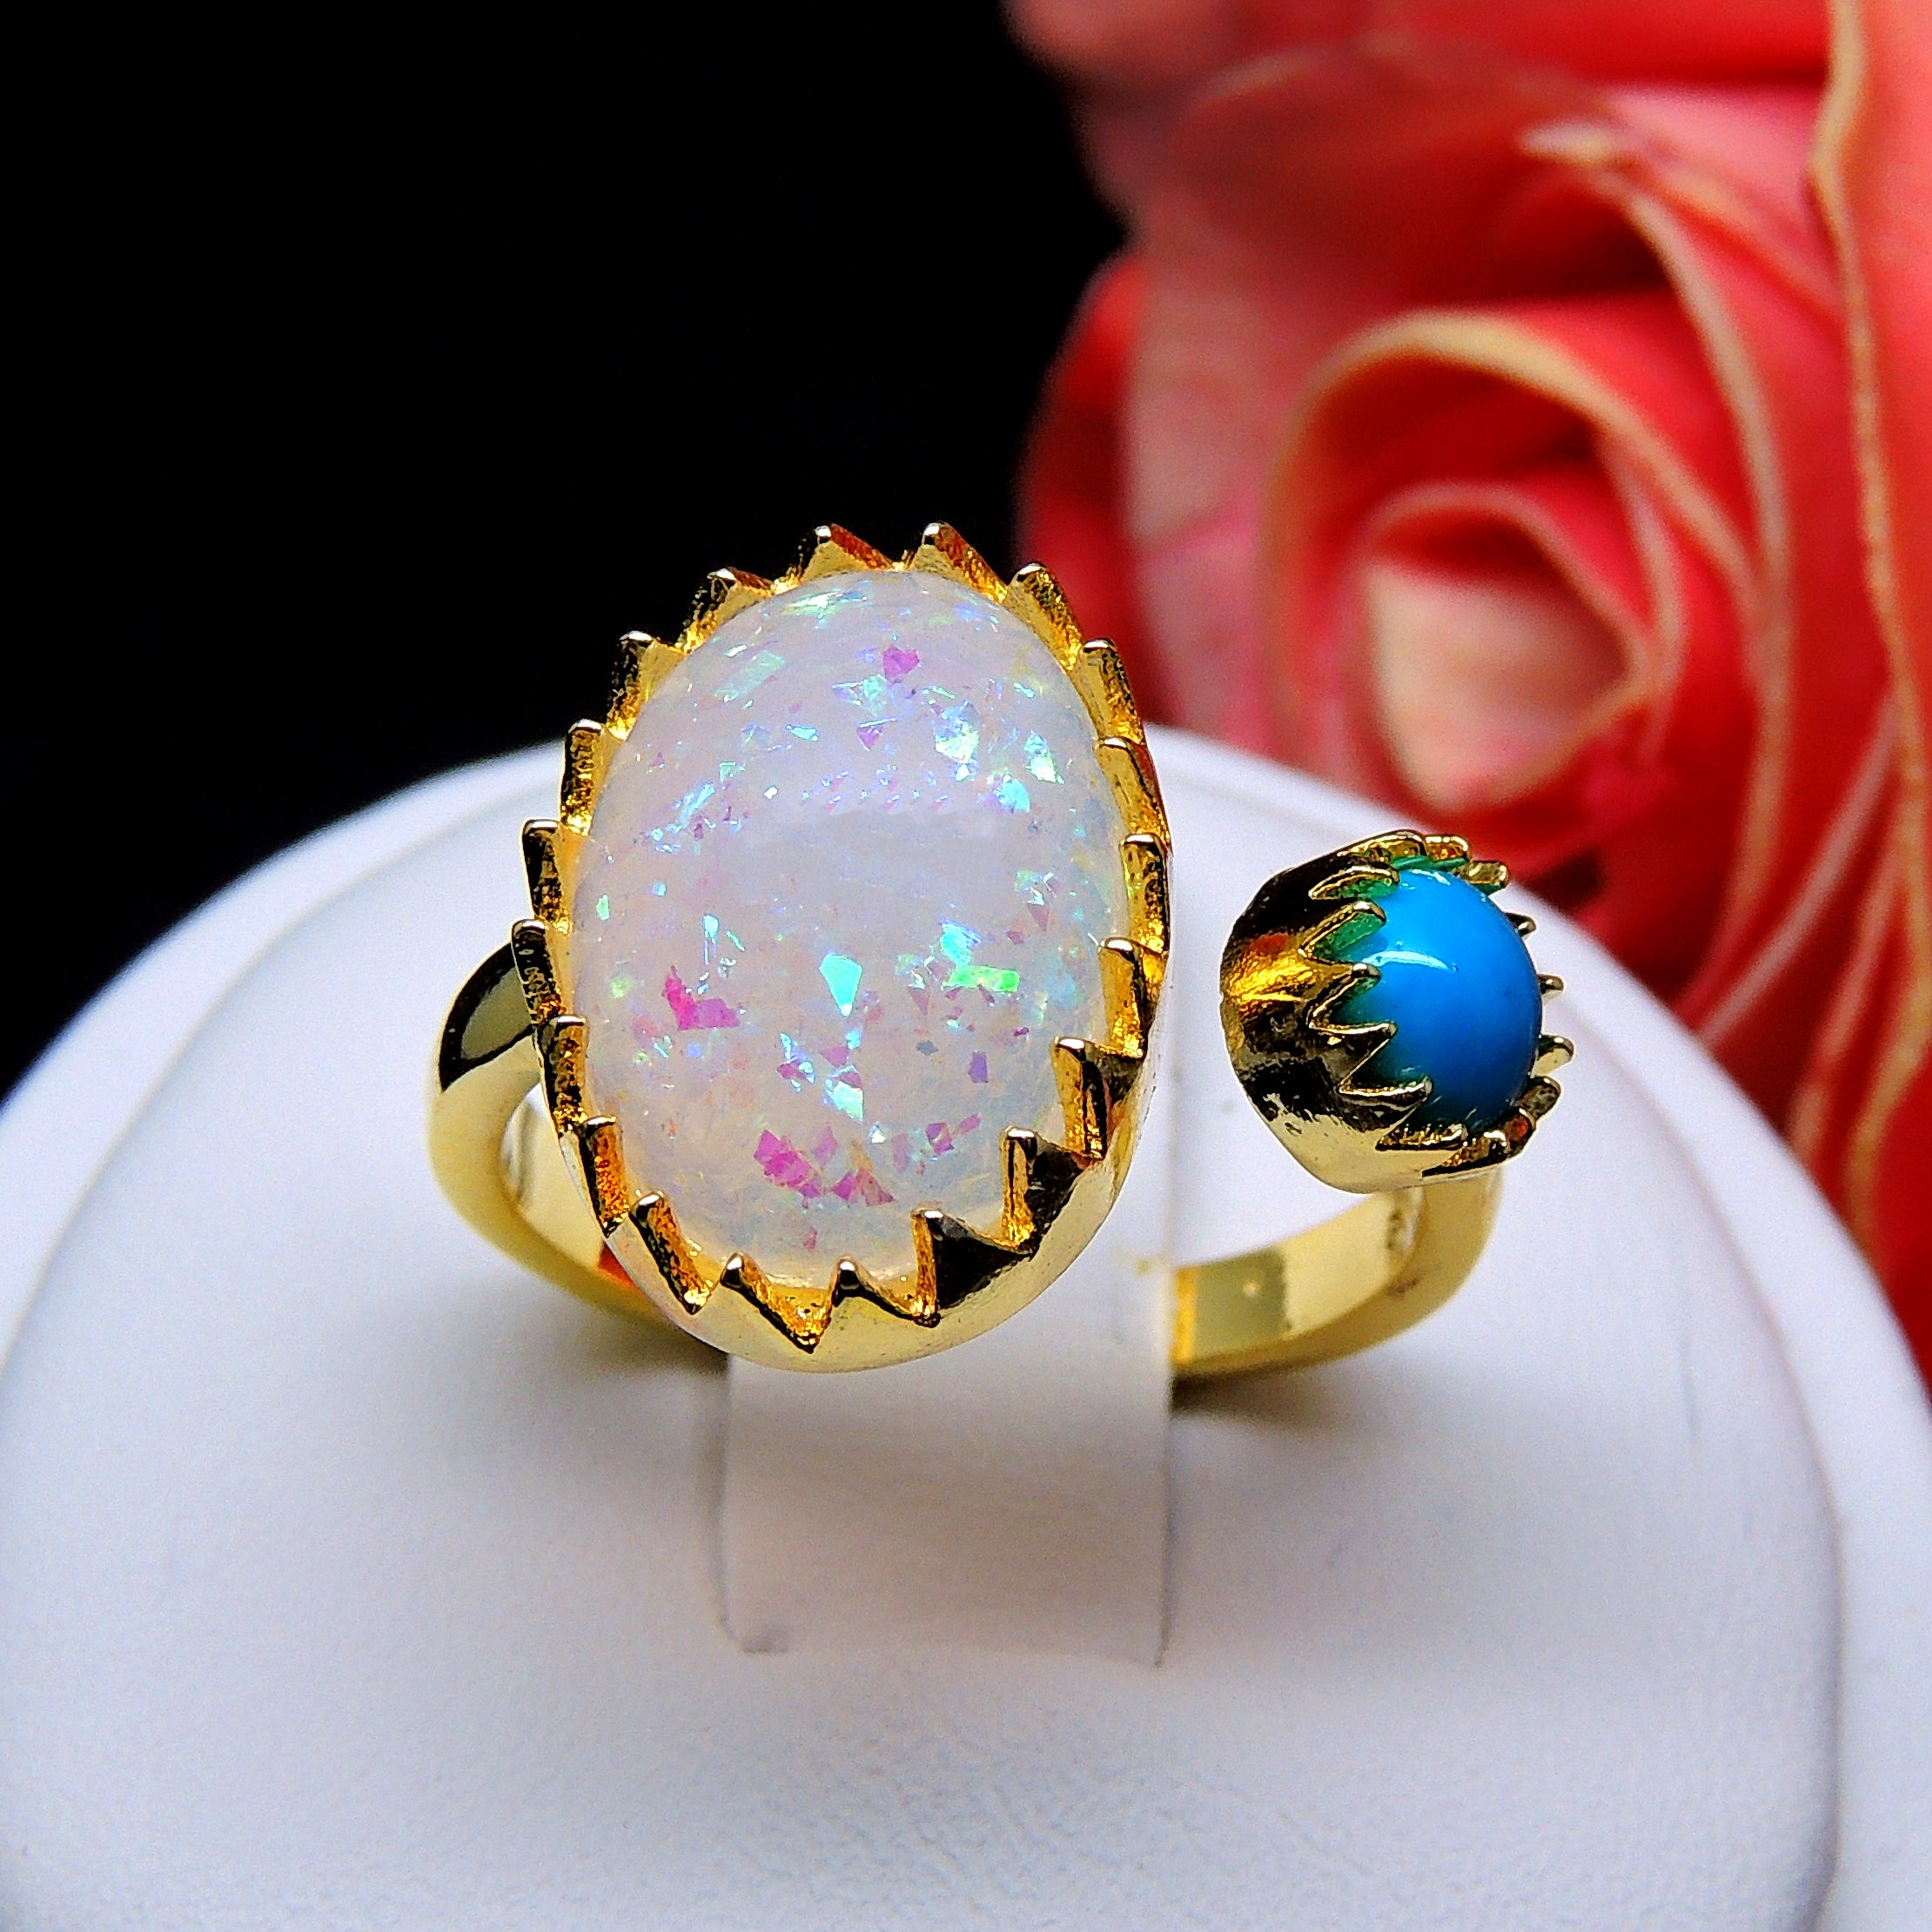 Bexley Unique Oval Simulated Fire Opal Turquoise Ring Ginger Lyne Collection